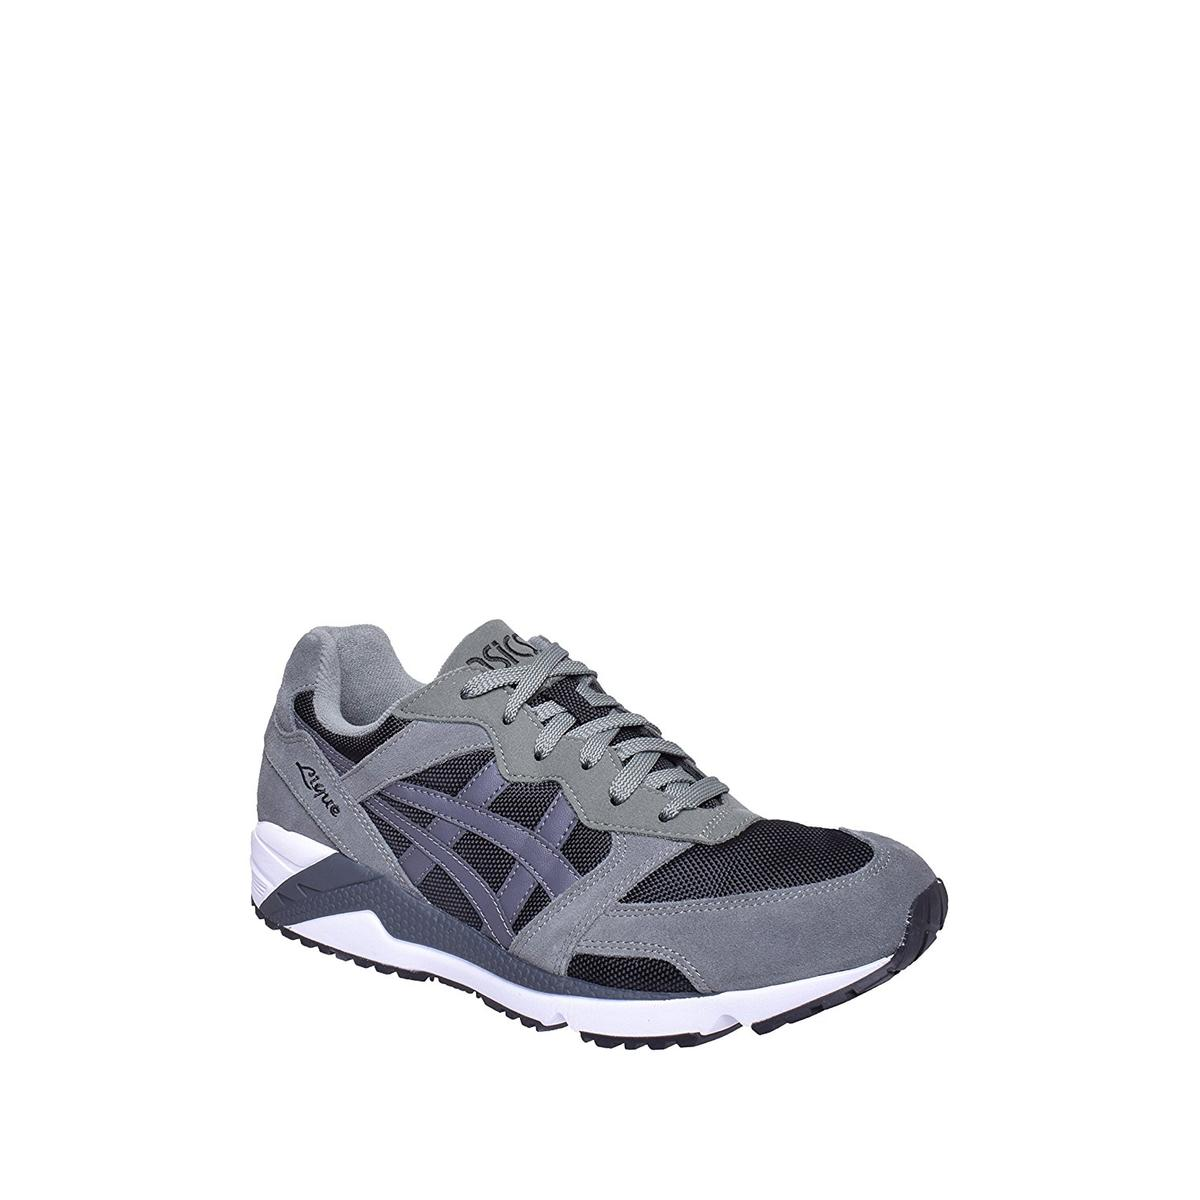 the latest a0a6f 8eb7f Details about ASICS Gel-Lique Men's Black/Dark Grey Casual Sneakers 9M